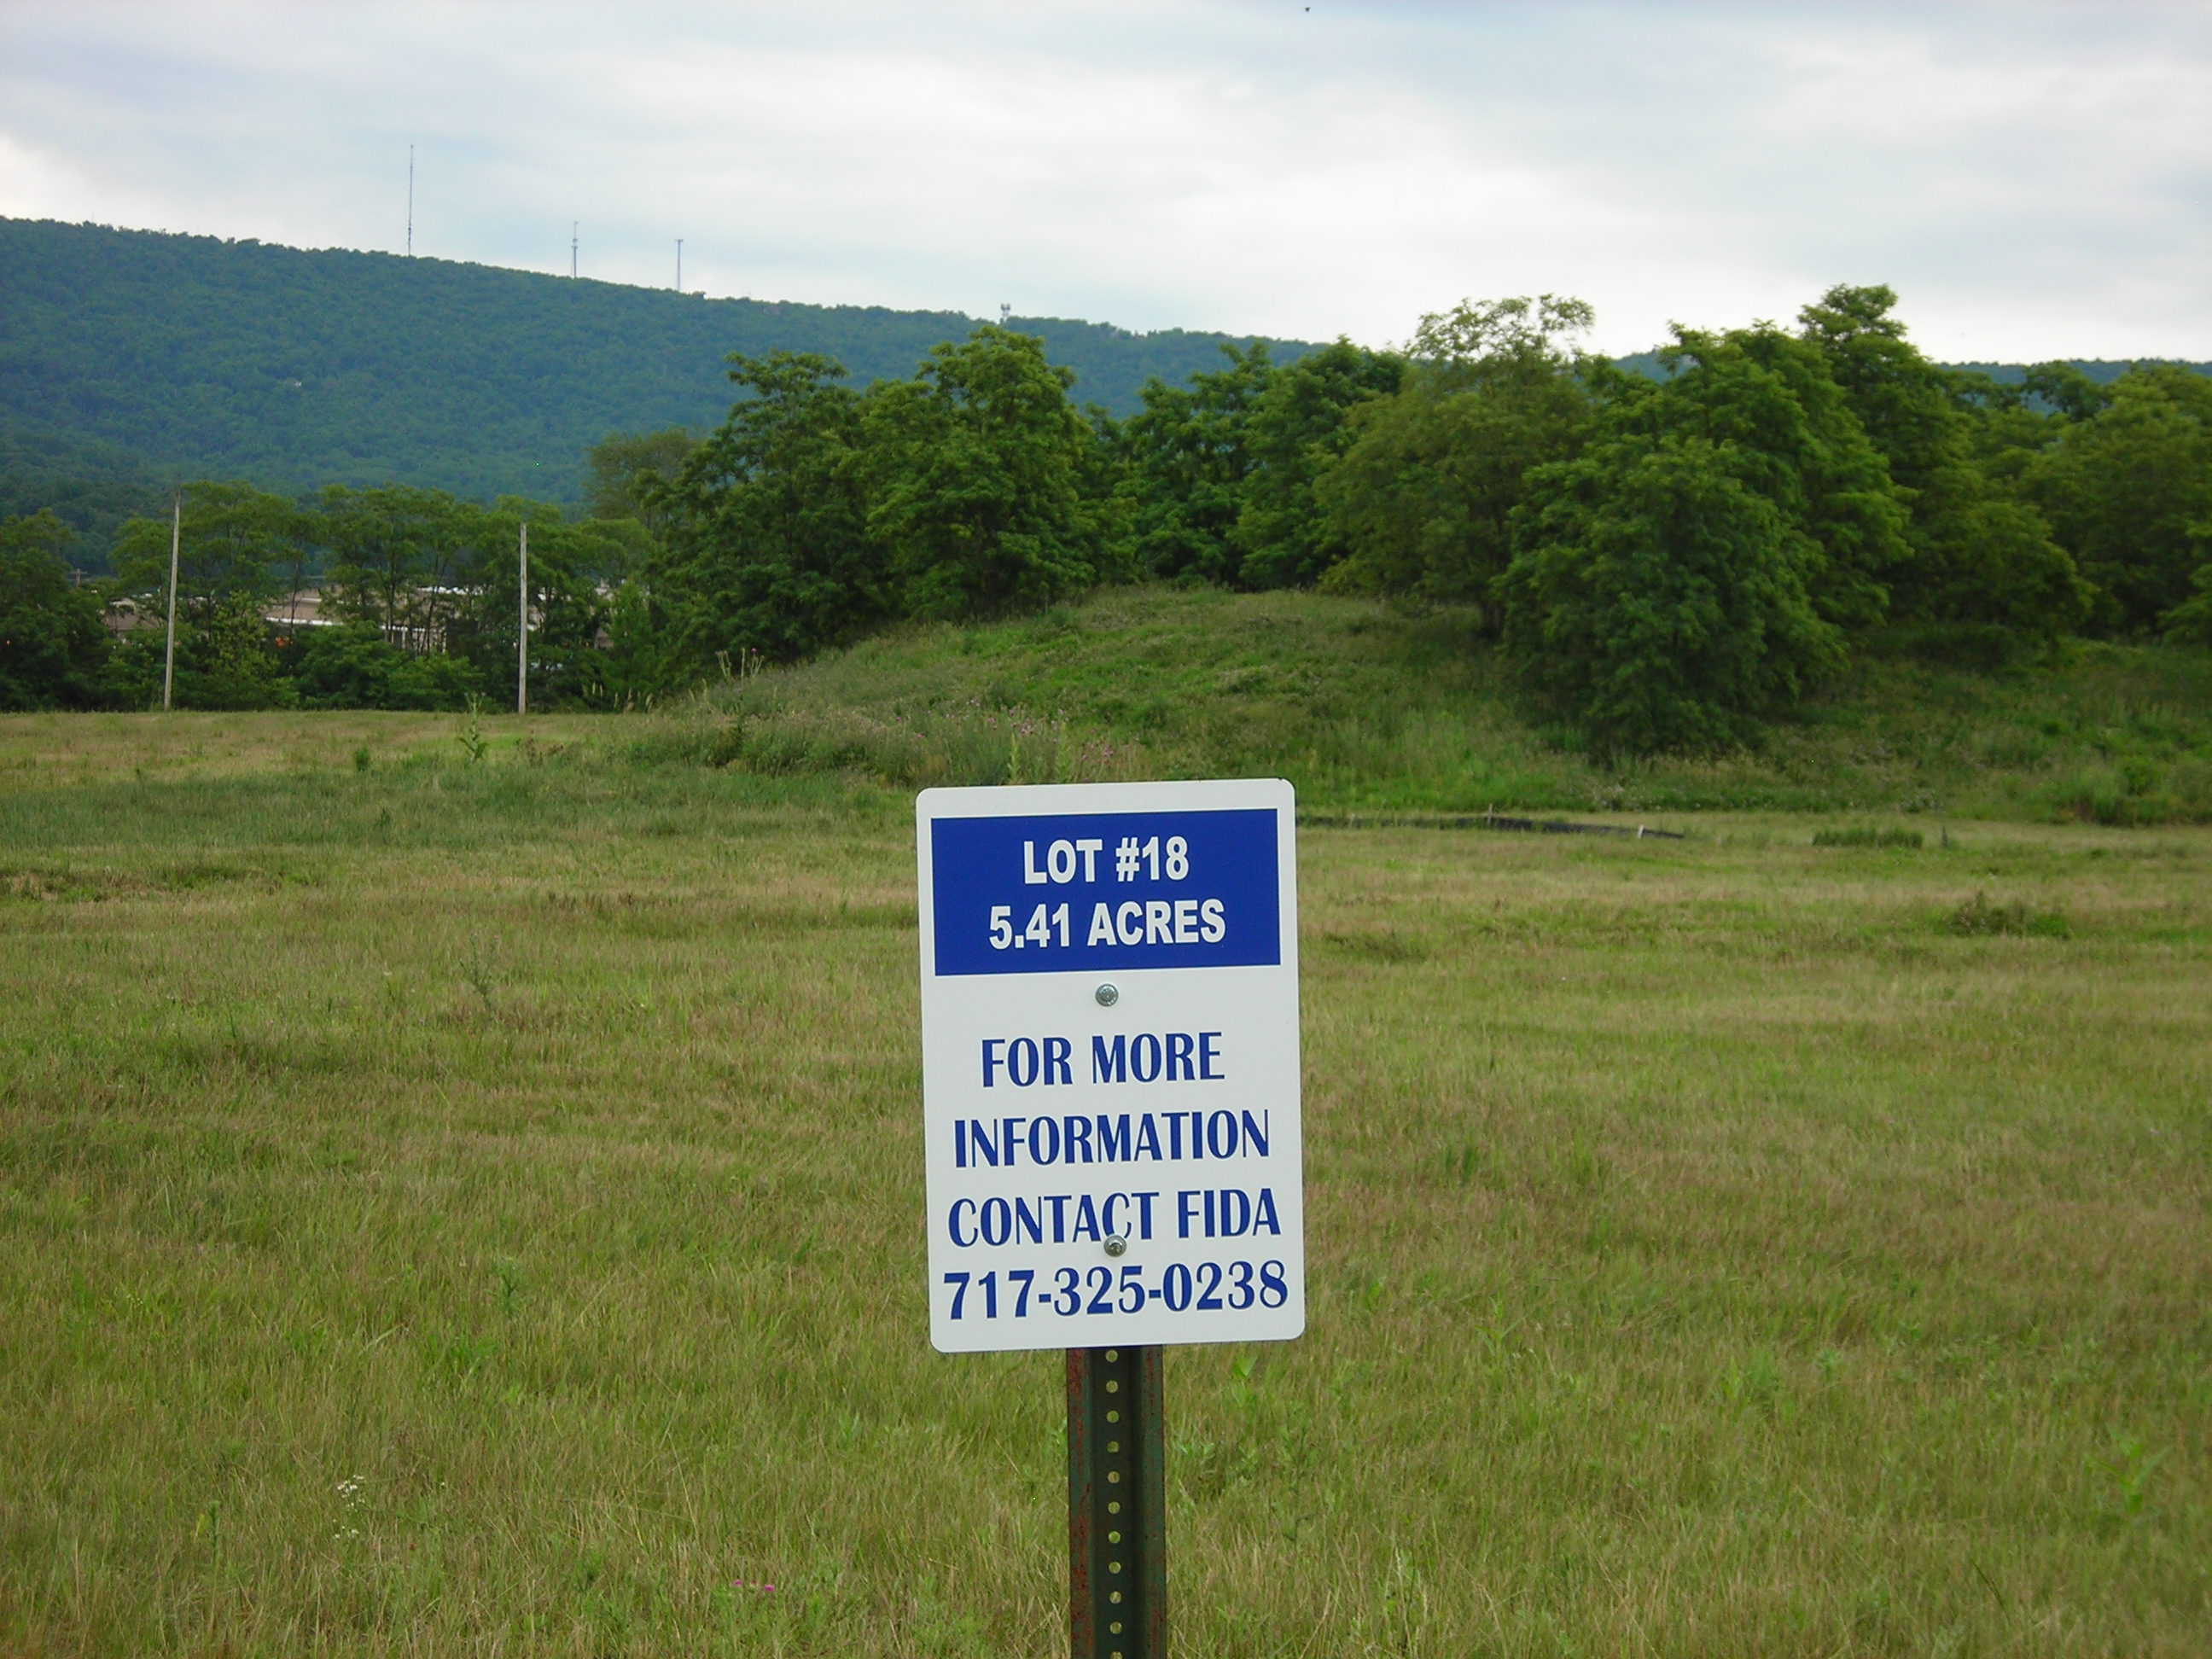 Lot #18 contains 5.41 acres and is one of our prime lots ready to develop